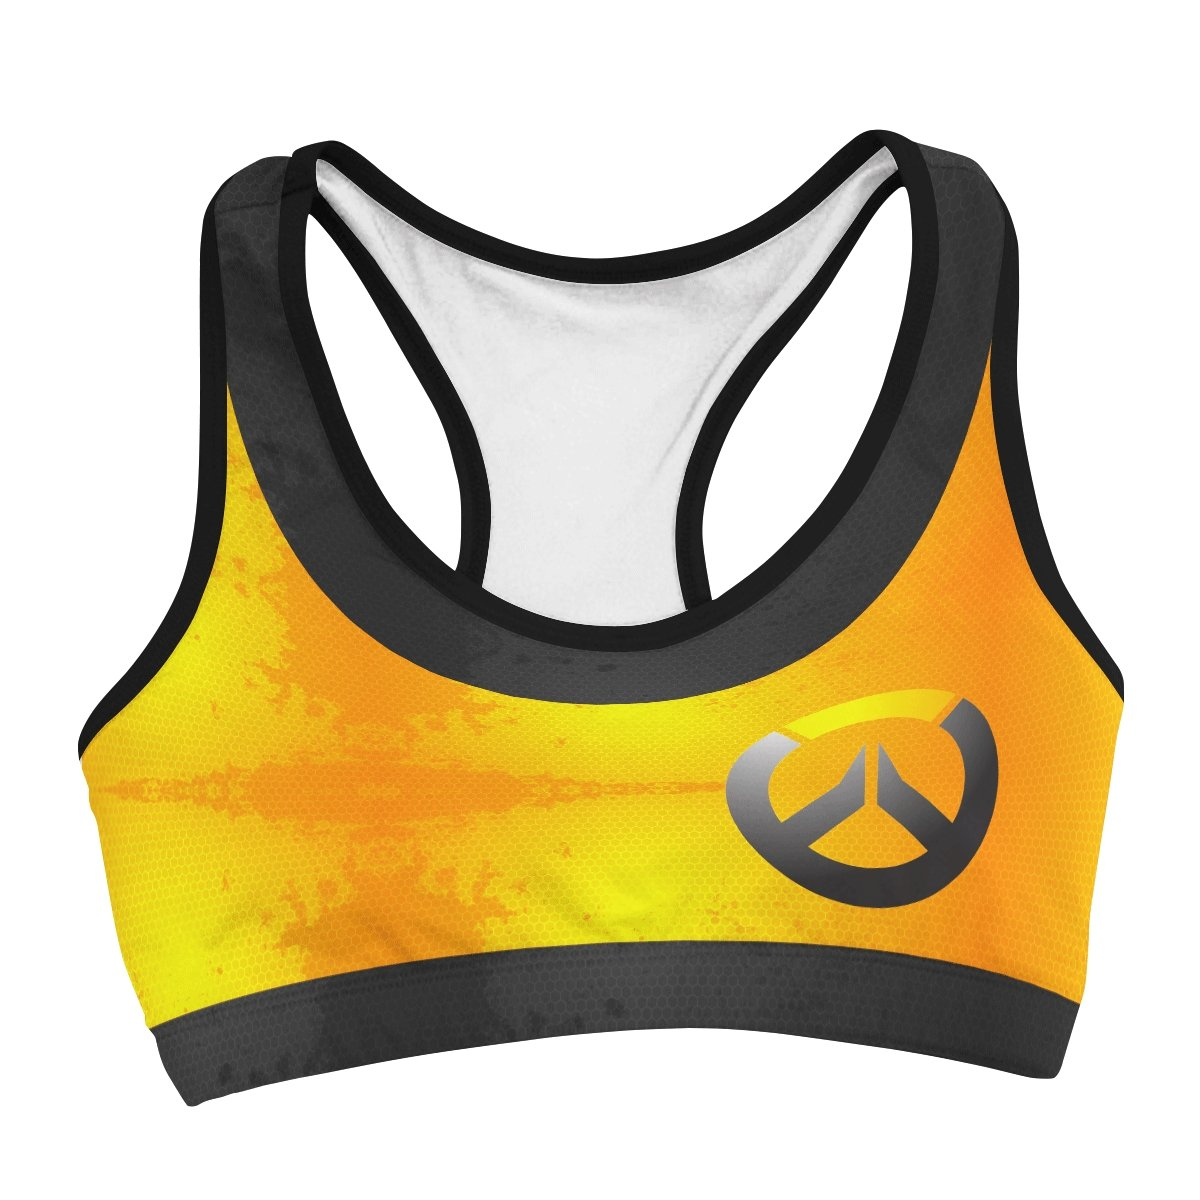 tracer summer active wear set 803881 - Anime Swimsuits